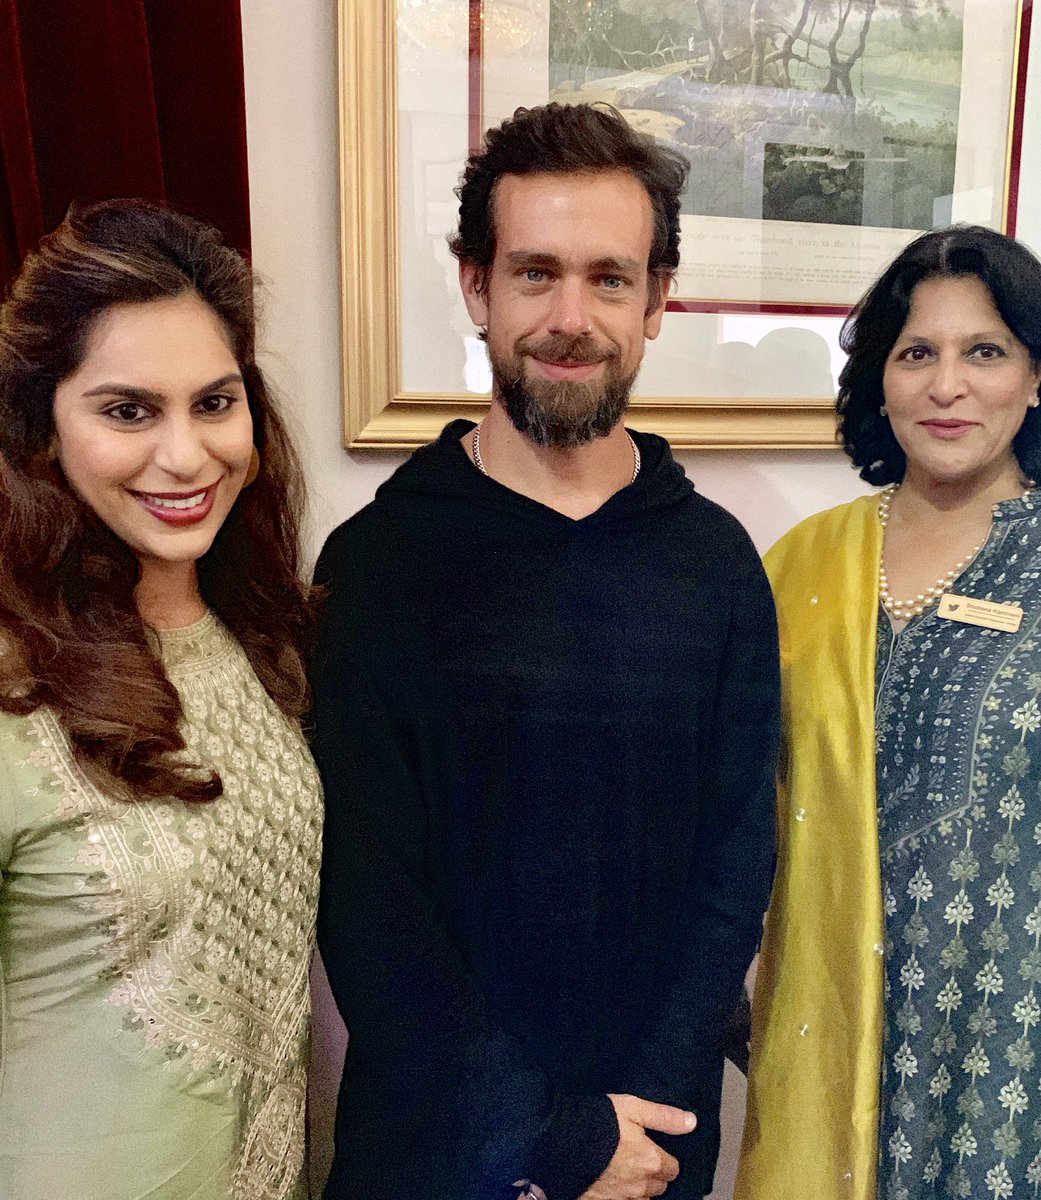 Upasana dinner with Twitter Boss Jack Dorsey! & Ram Charan has no Twitter account